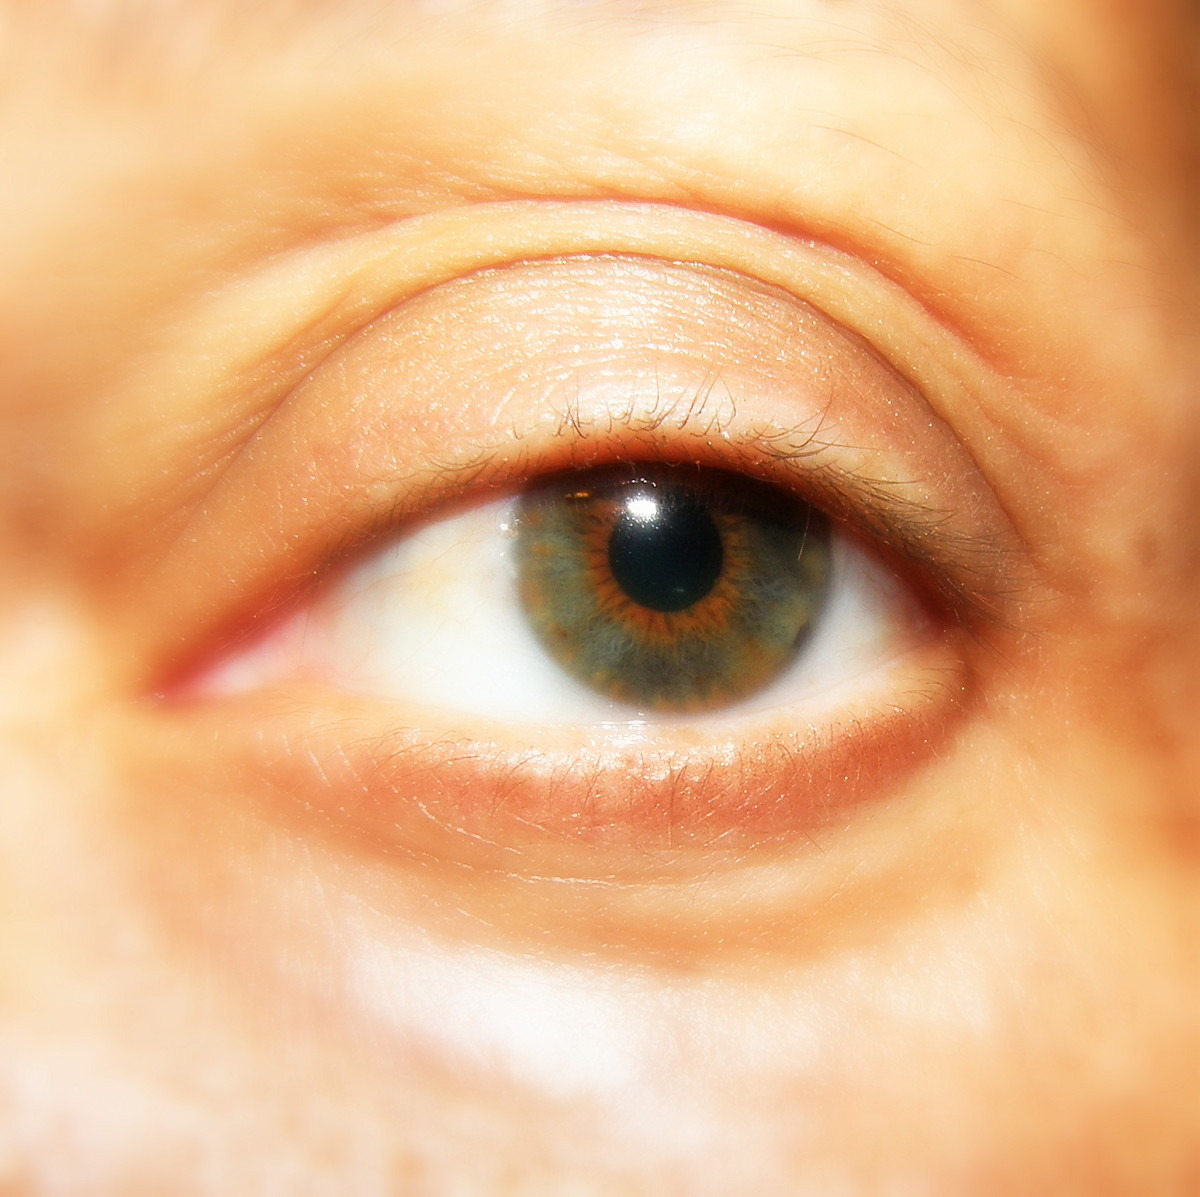 Author's natural eye.  I started to lose my eyelashes due to illness. I really needed some help, as regular mascara did nothing.